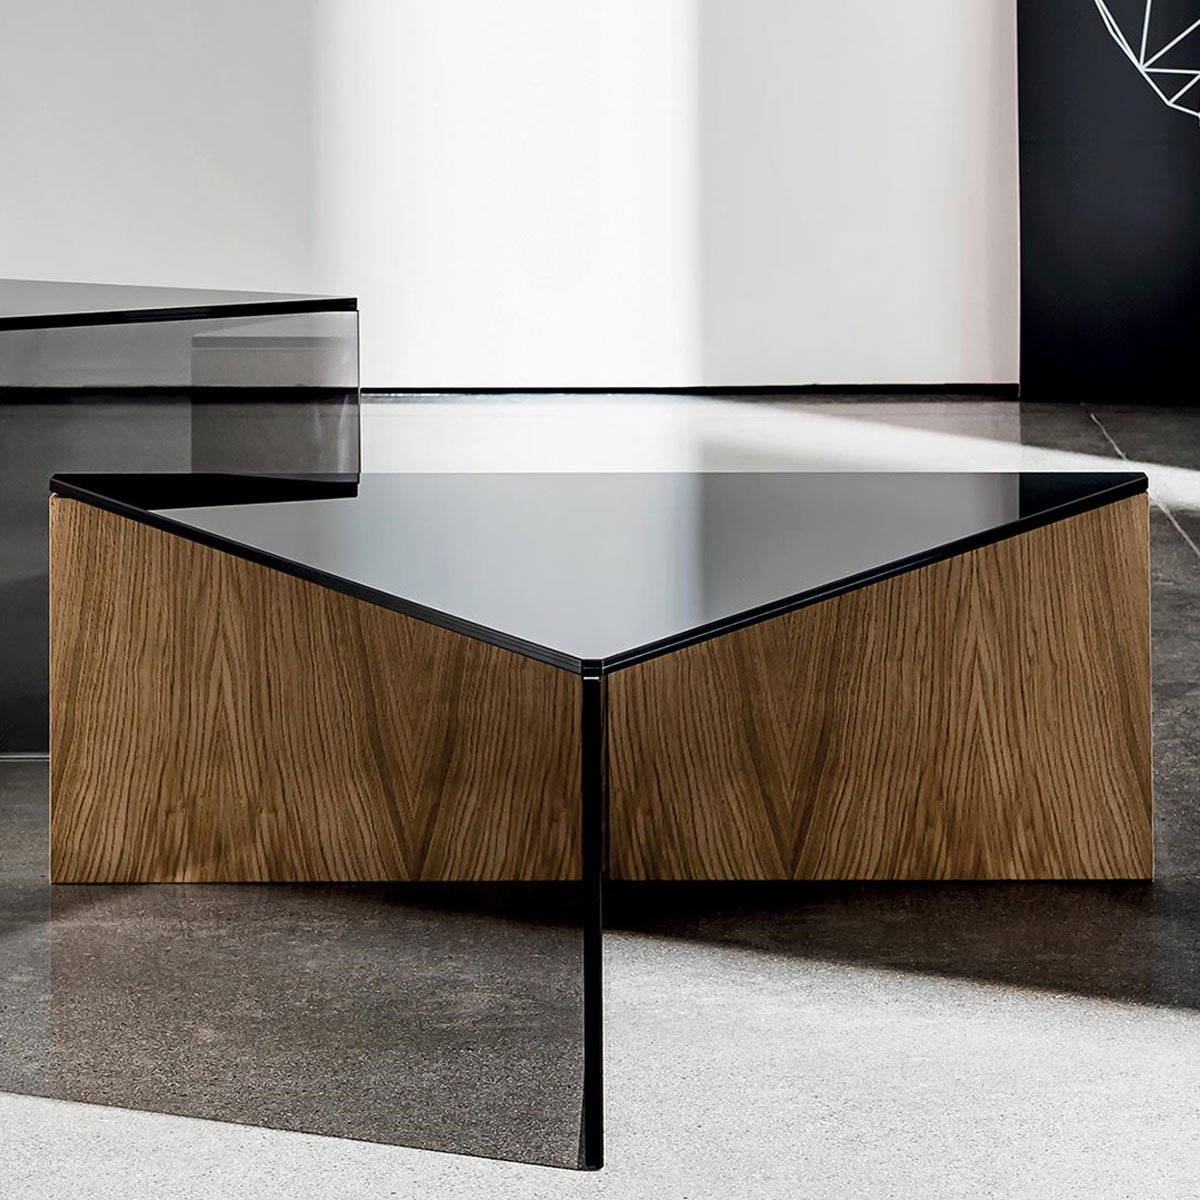 Couchtisch Dreieckig Holz Regolo Triangular Glass And Wood Coffee Table Klarity